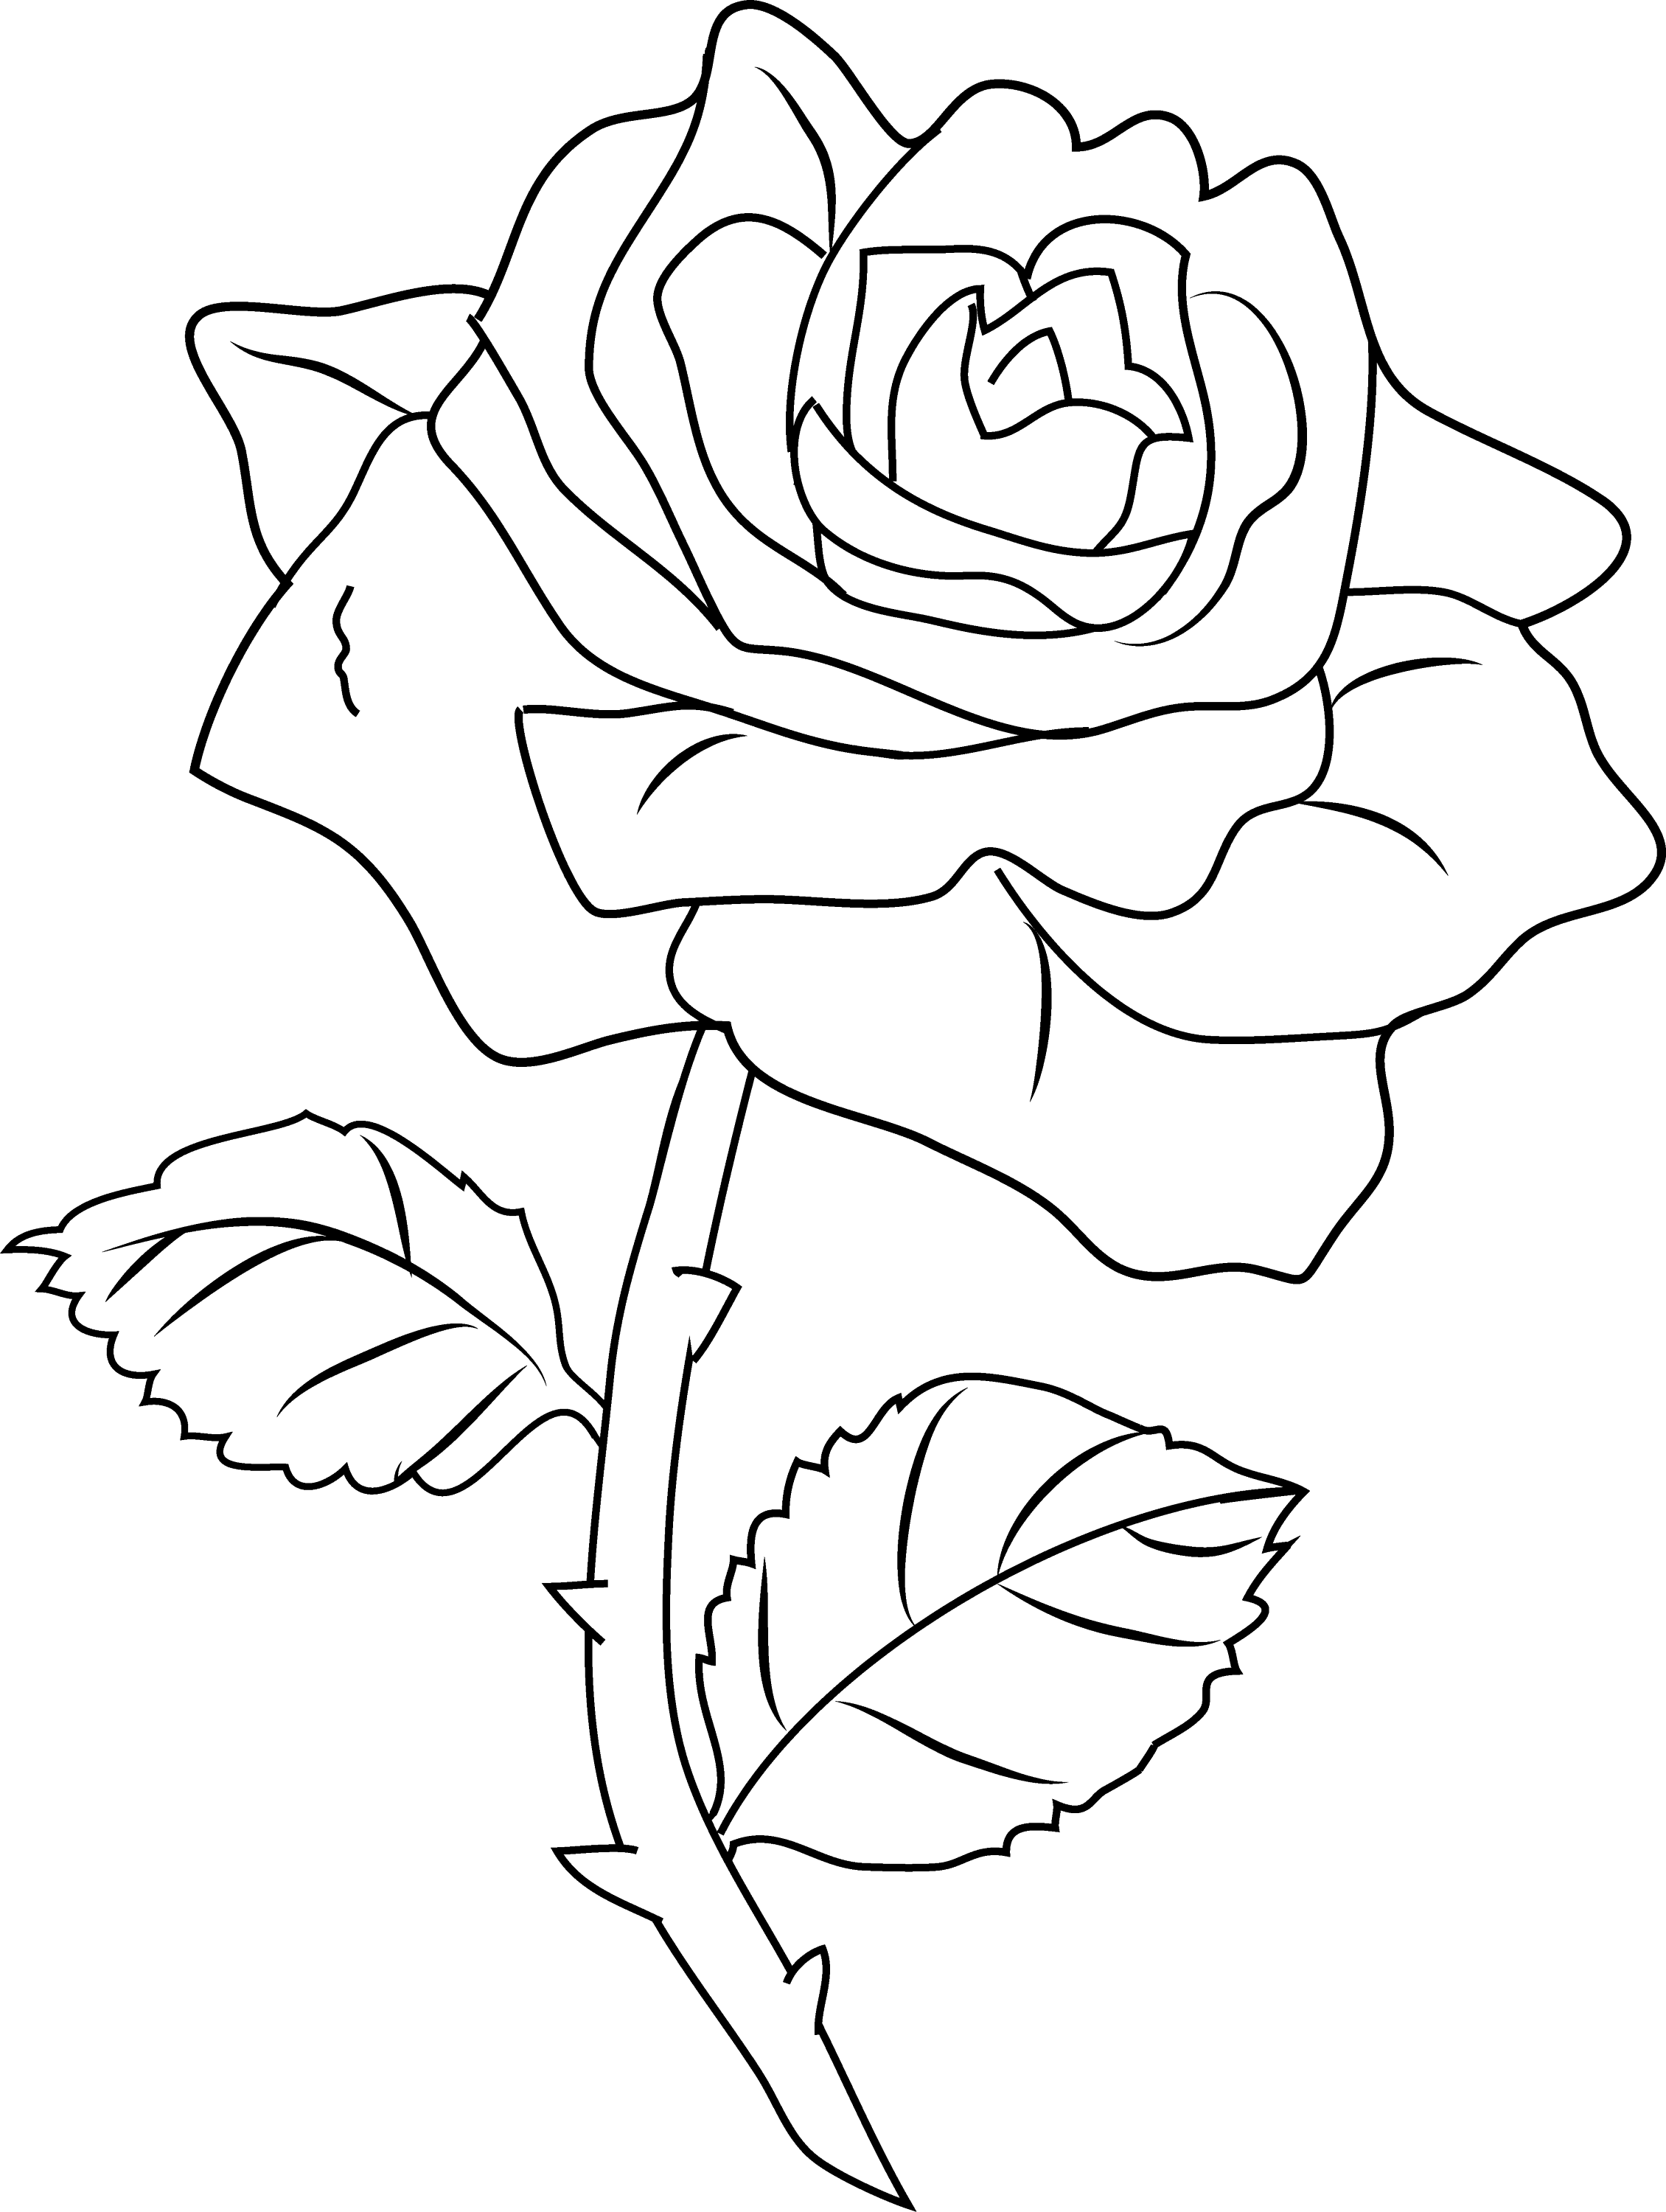 Line Drawing Of A Rose : Knumathise rose black and white outline images